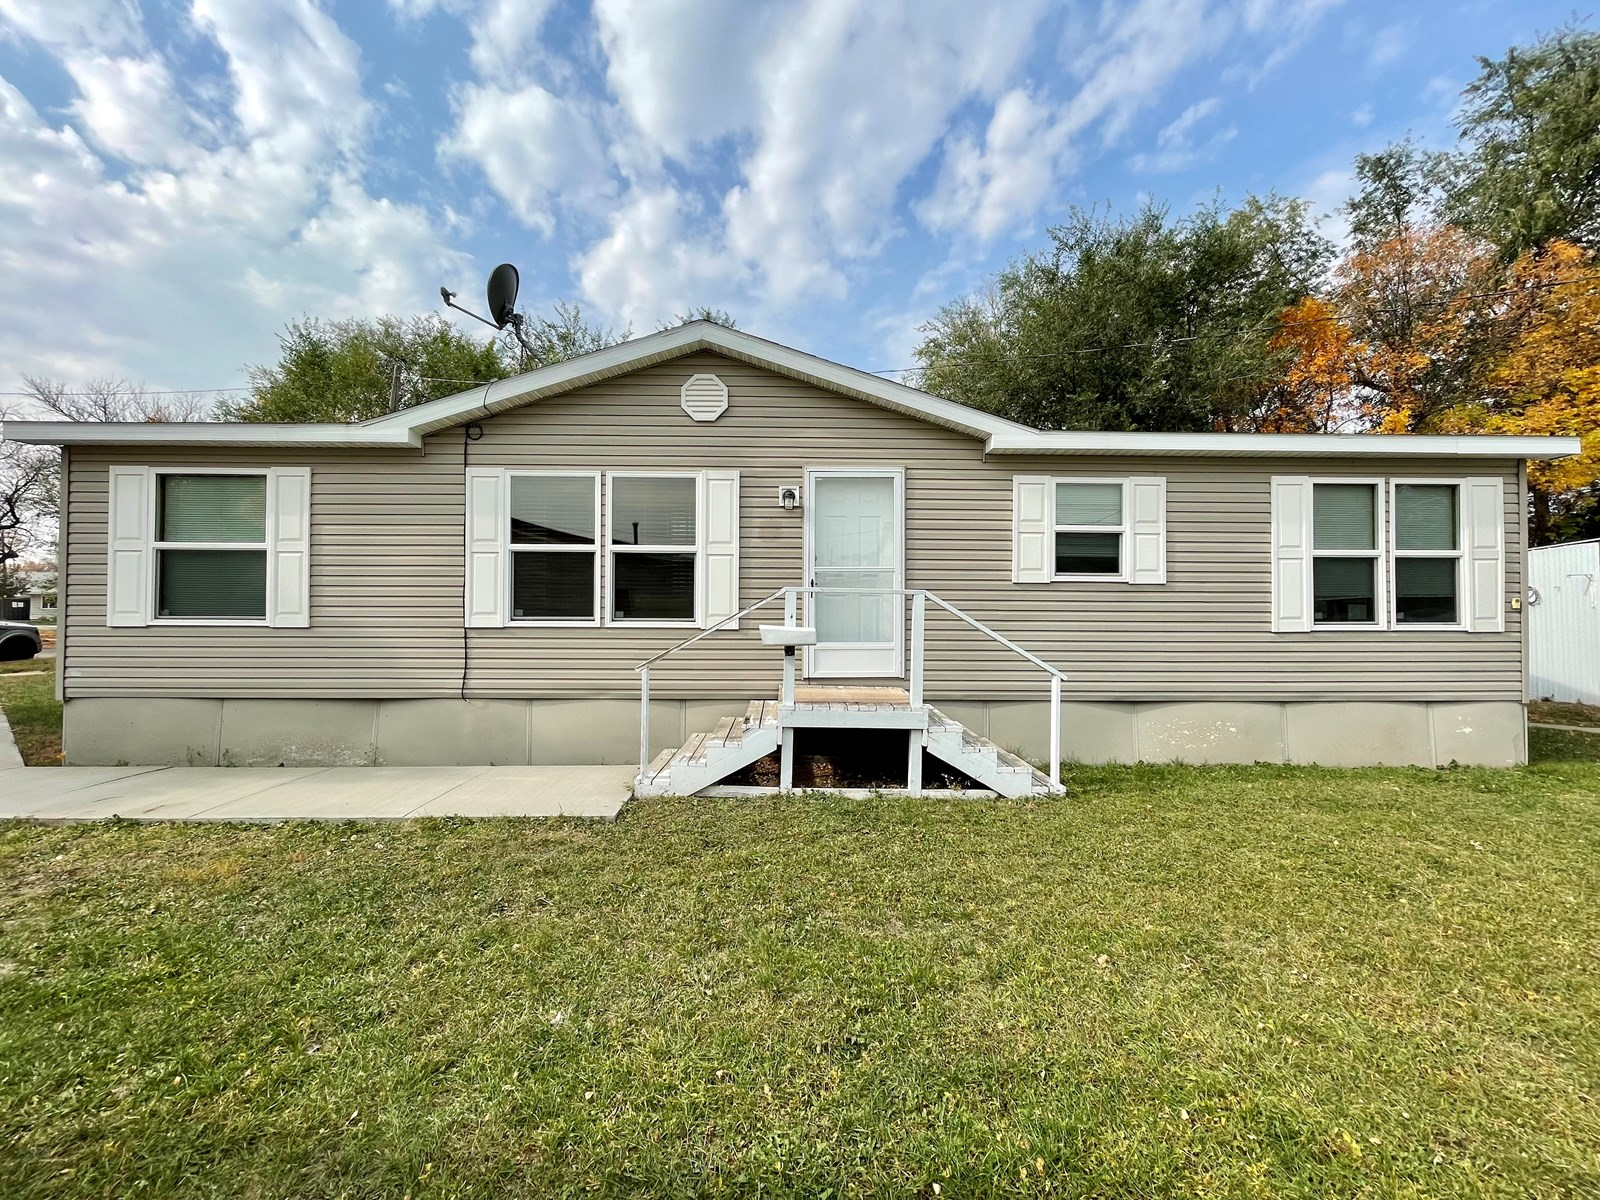 One Level, 3 Bed, 2 Bath Modular Home Built in 2011